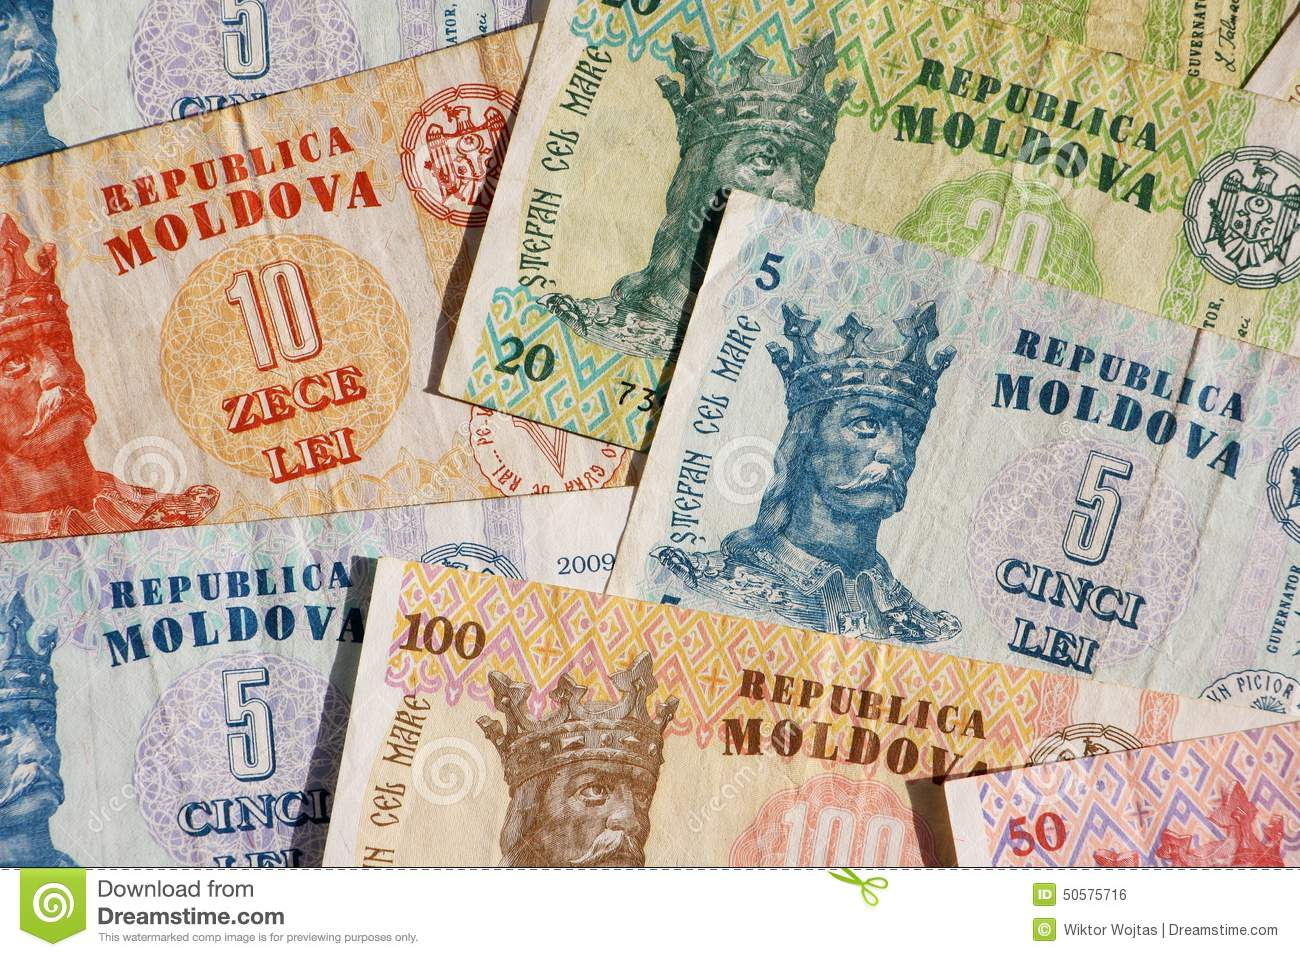 what is the currency of moldova